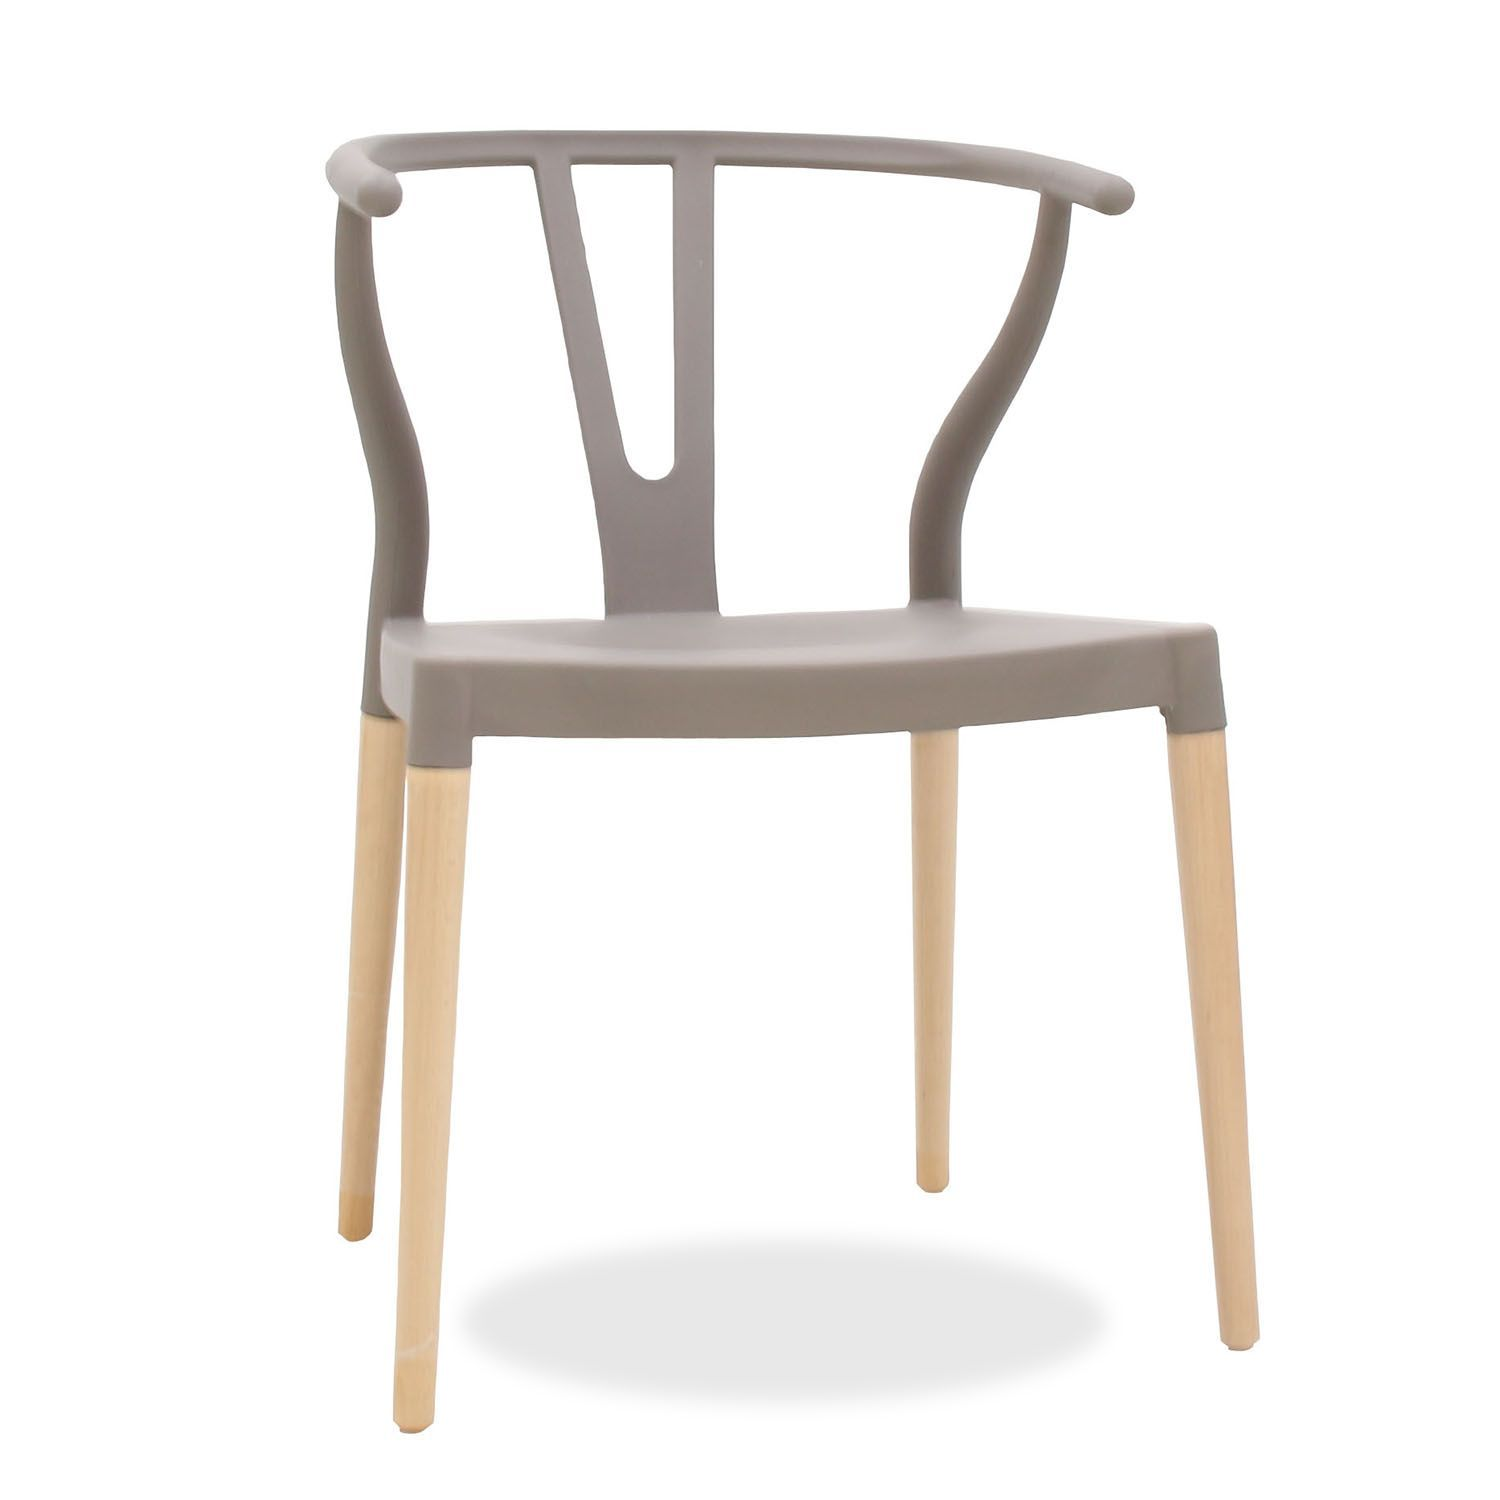 Fer Polypropylene Chair (Plastic Chairs With Wooden Legs) Wishbone